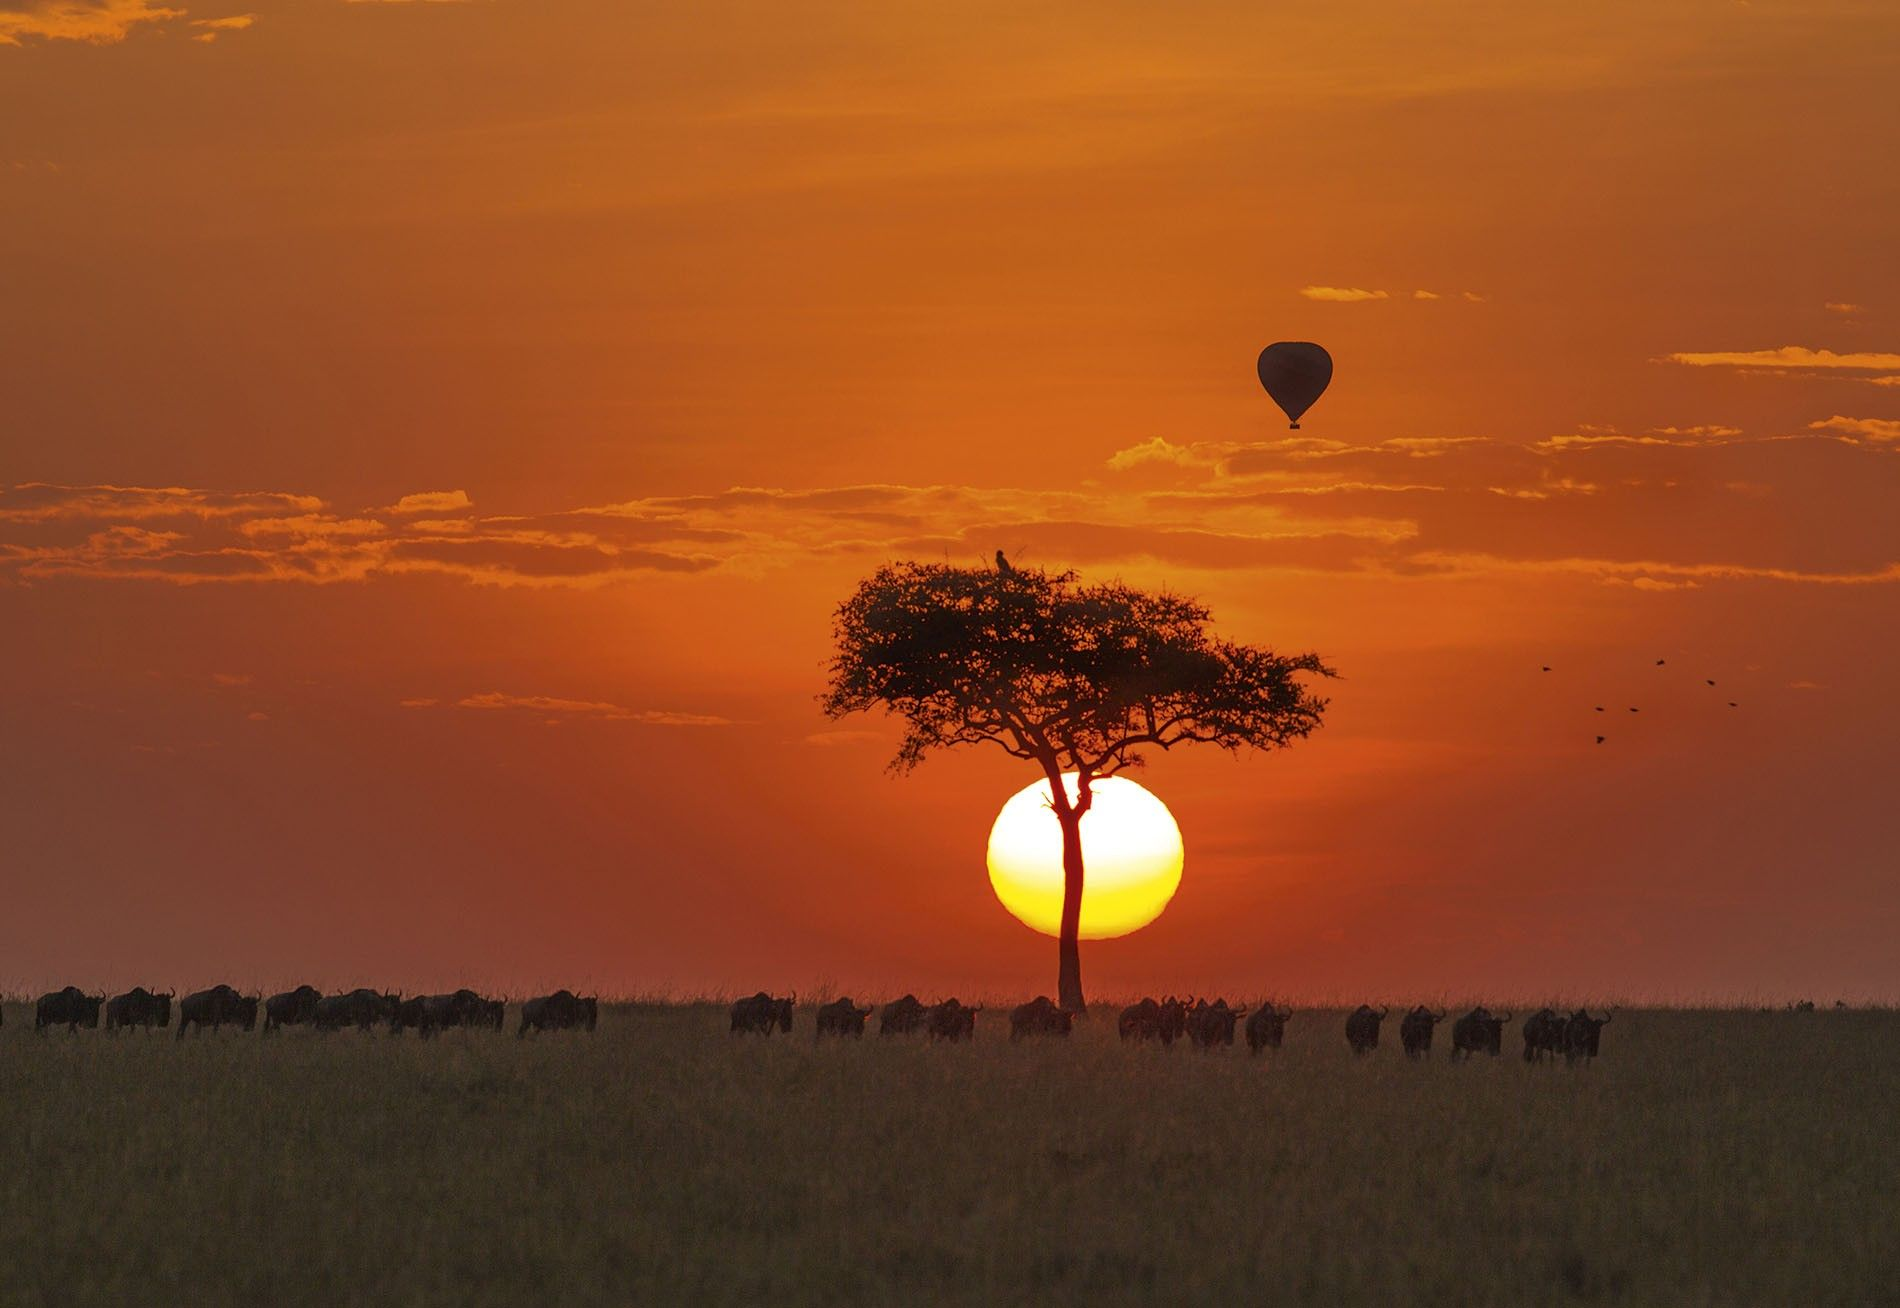 Anyone who'd like to sample the thrill of hot air ballooning over the Maasai Mara has just a sliver of opportunity each day, as balloonists start inflating their colourful craft long before sunrise.